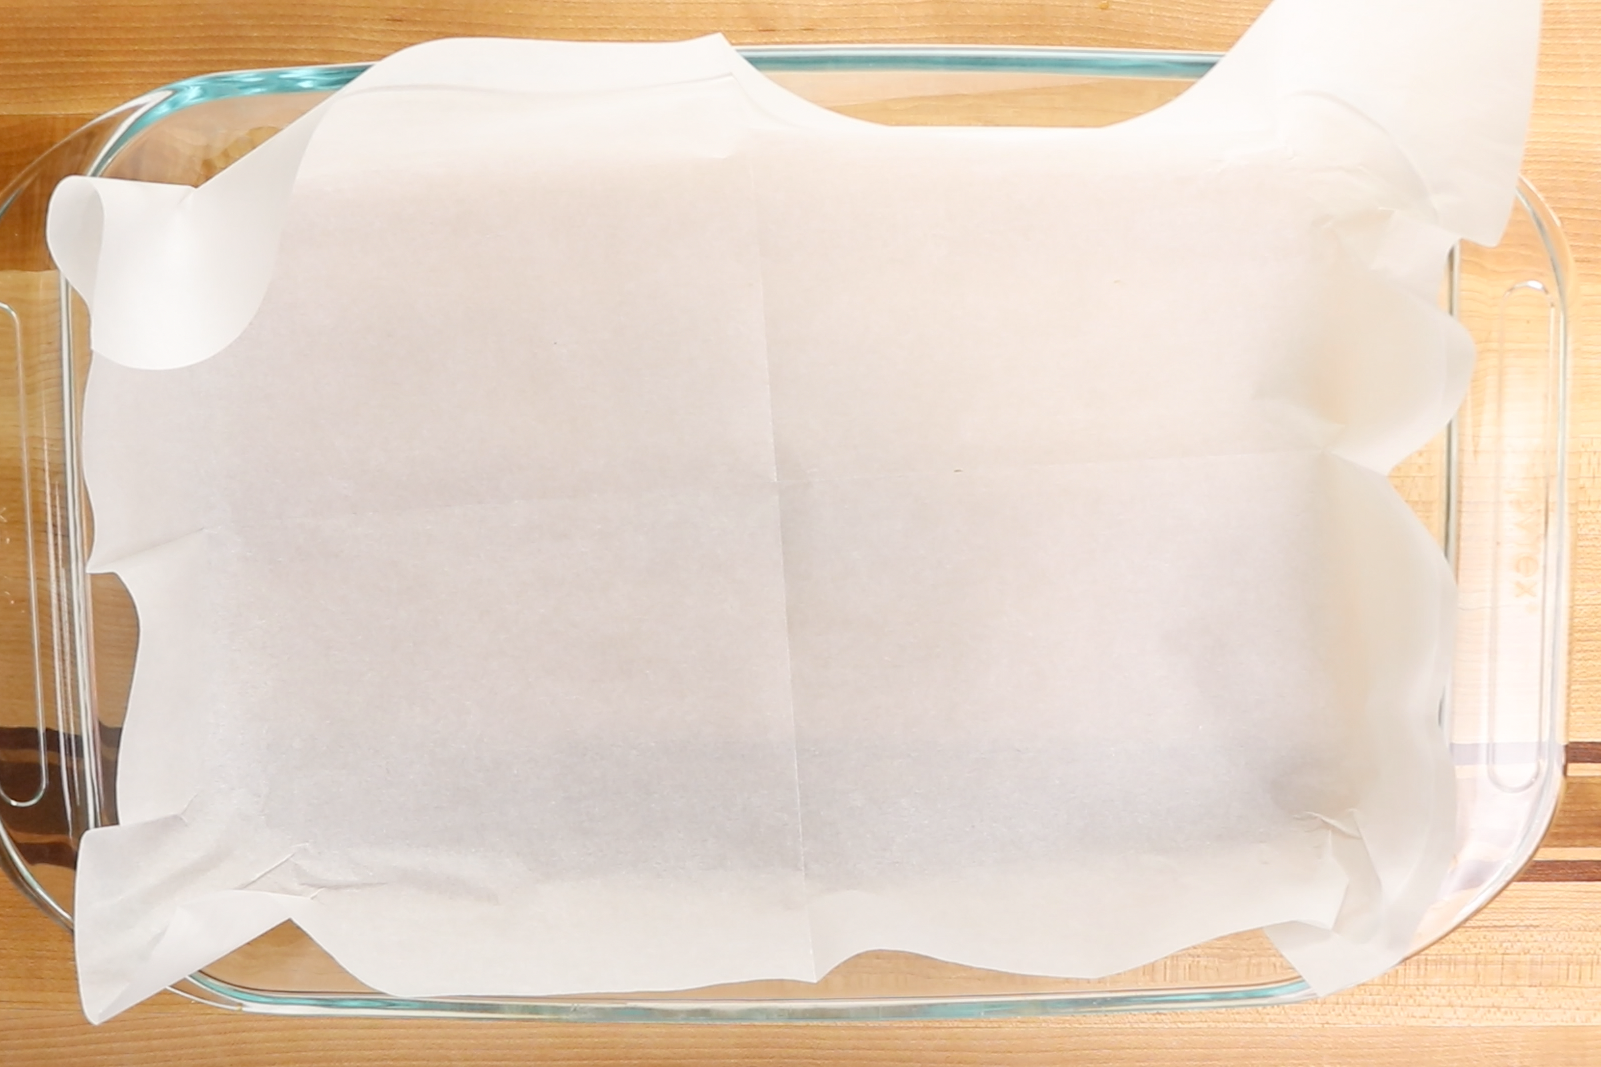 1. Preheat oven to 350 degrees. Line a 9x13 inch pan with parchment paper. -